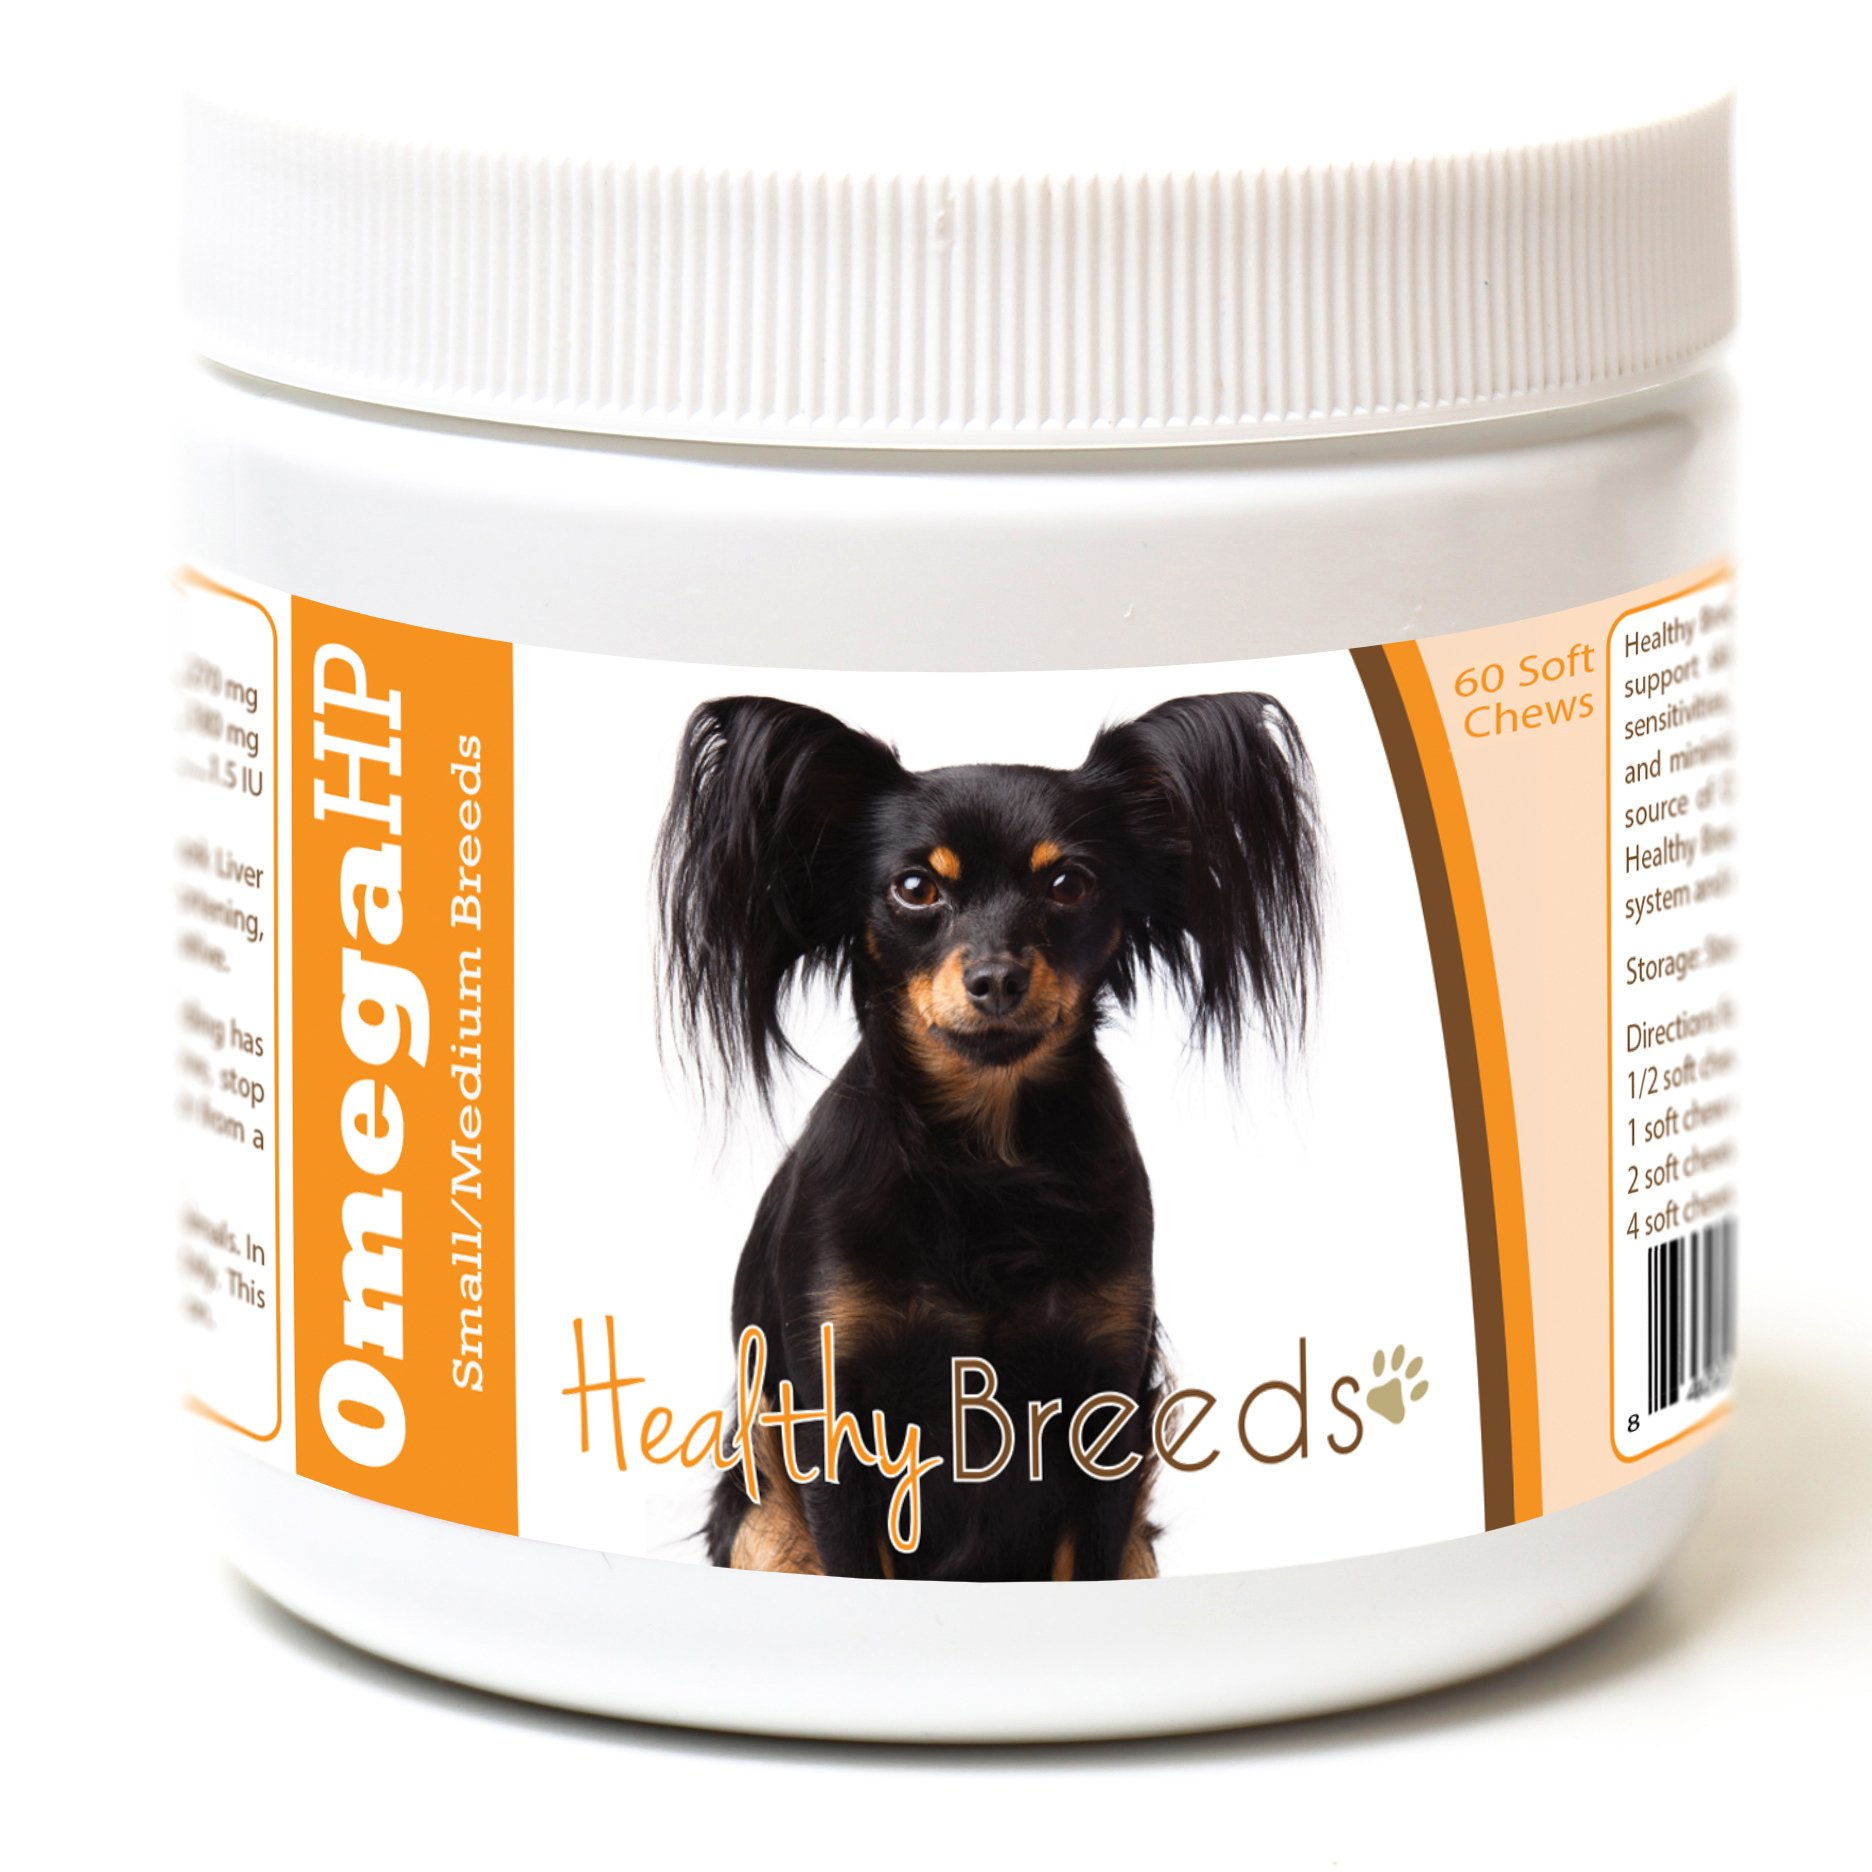 Healthy Breeds Omega 3 Fish Oil for Dogs for Russian Toy Terrier - Over 100 Breeds - EPA & DHA Fatty Acids - Small & Medium Breed Formula - 60 Count